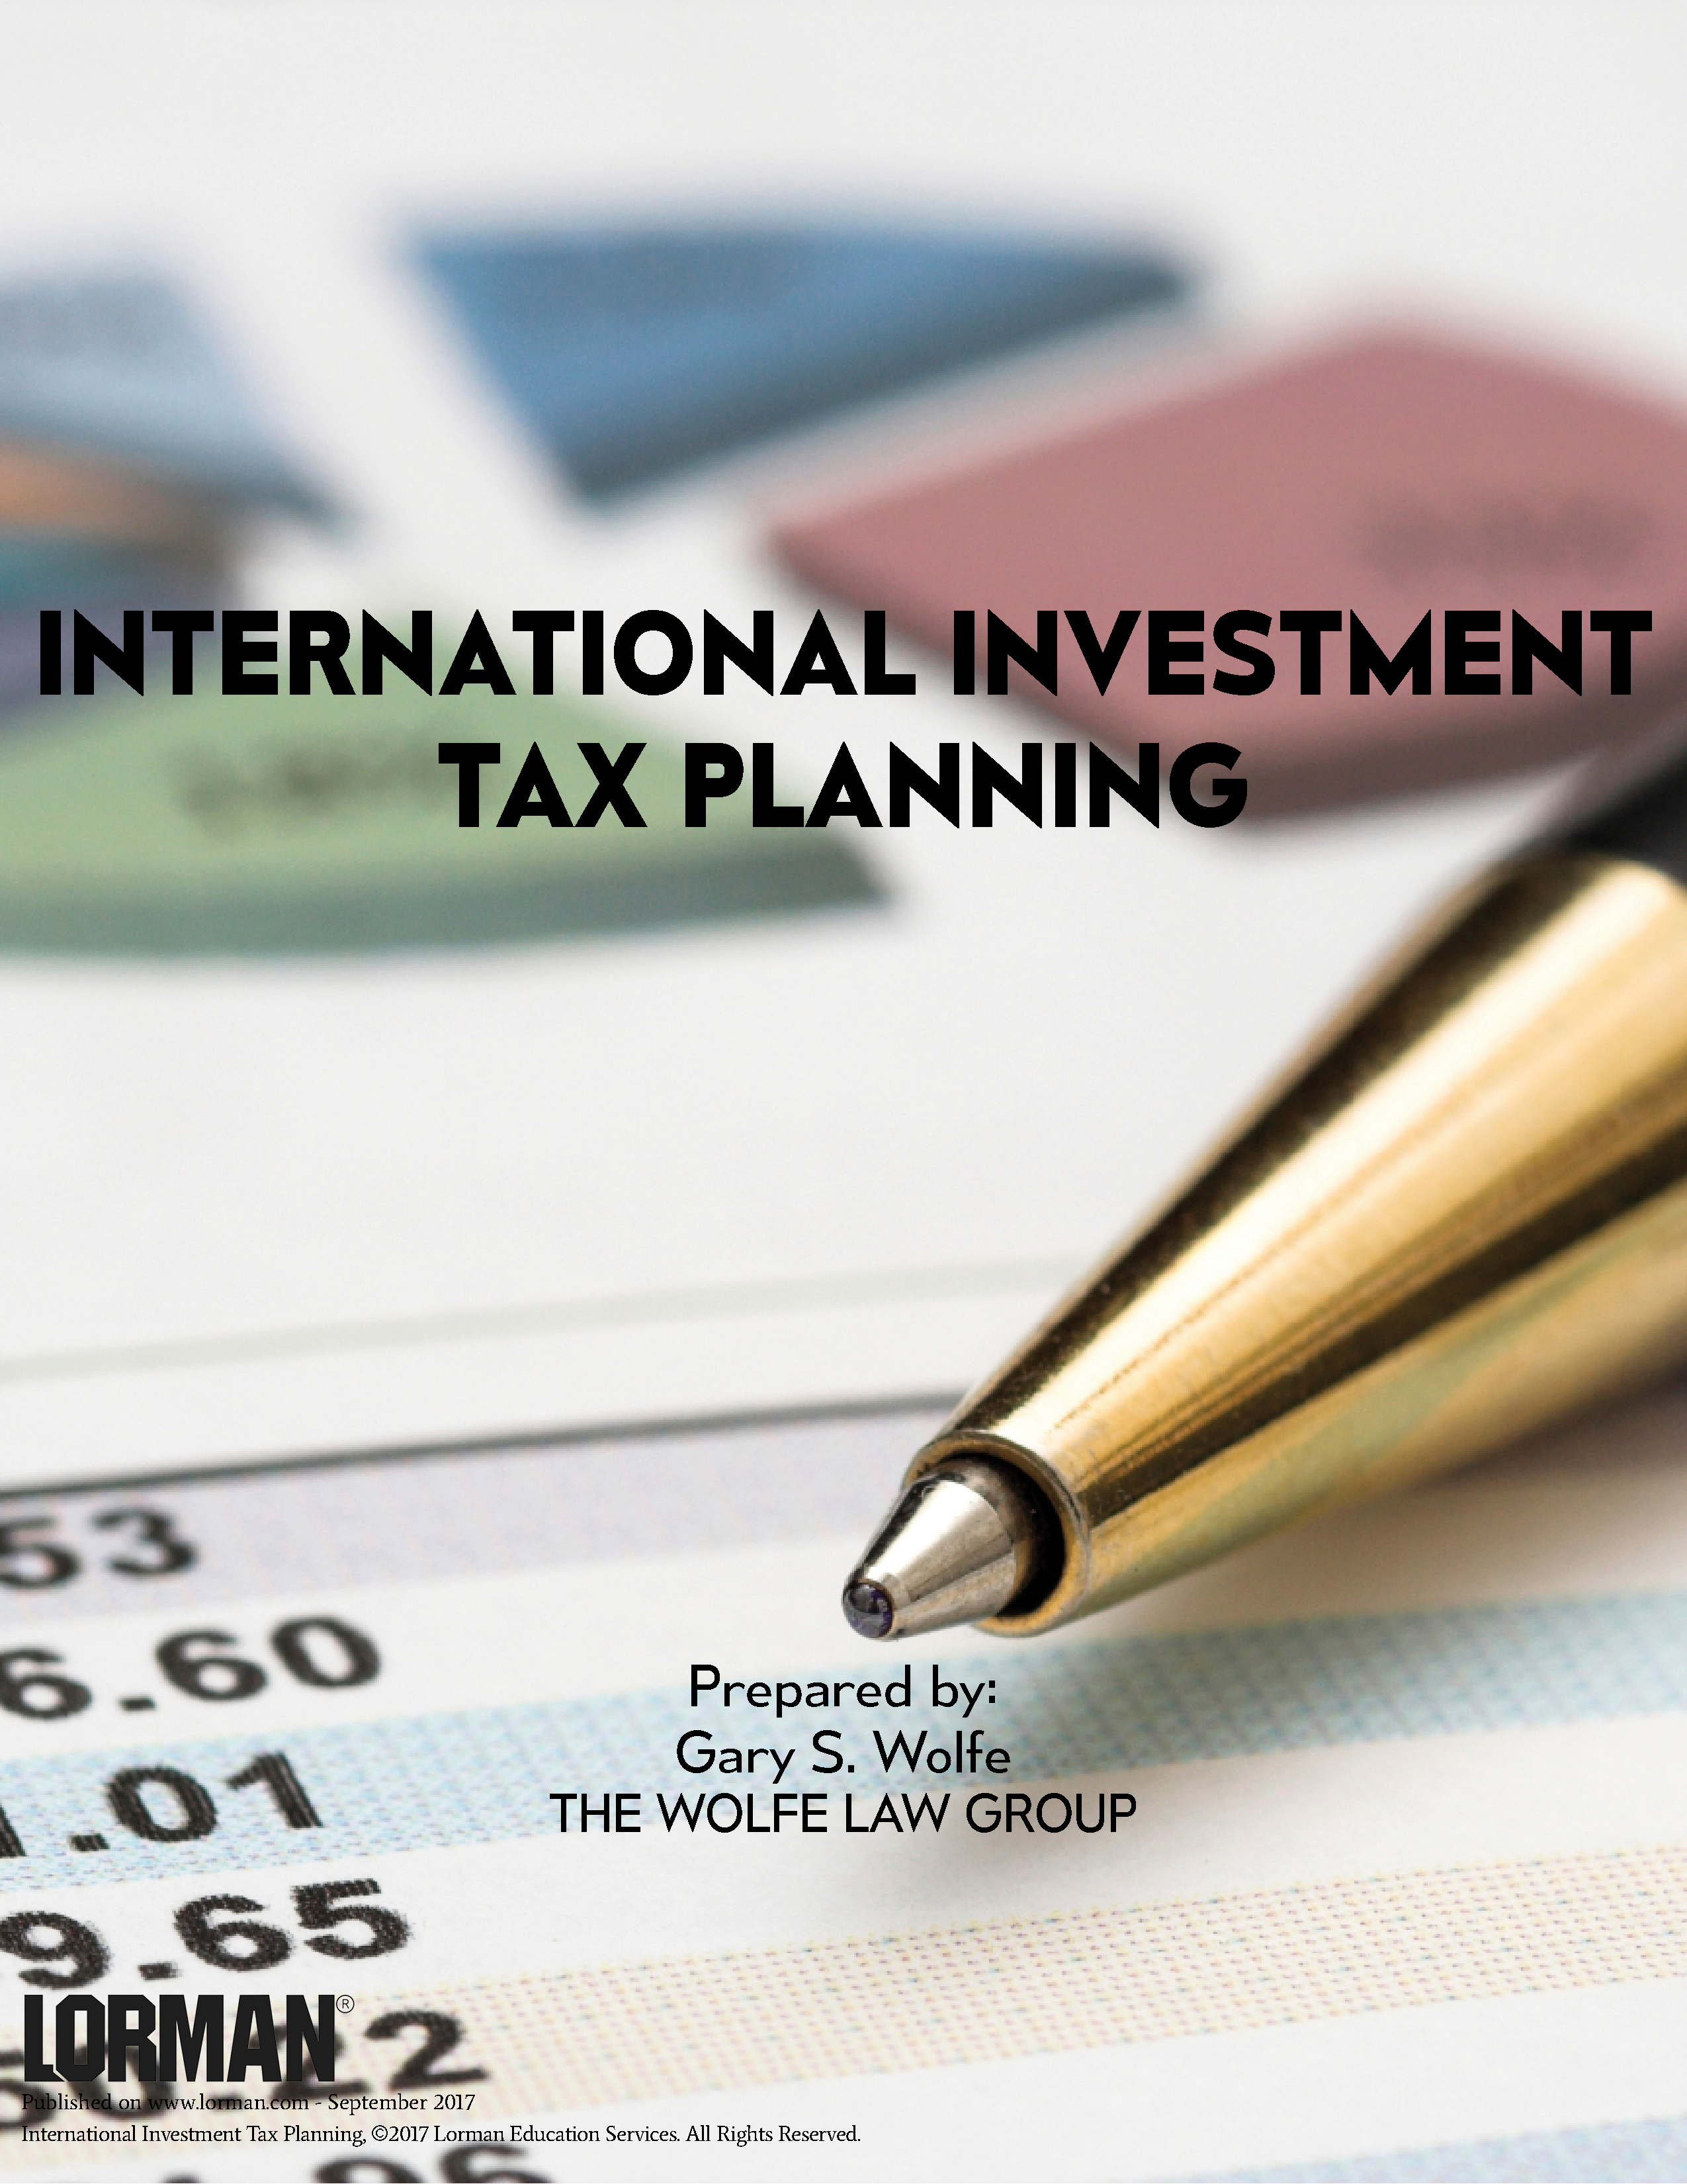 International Investment Tax Planning